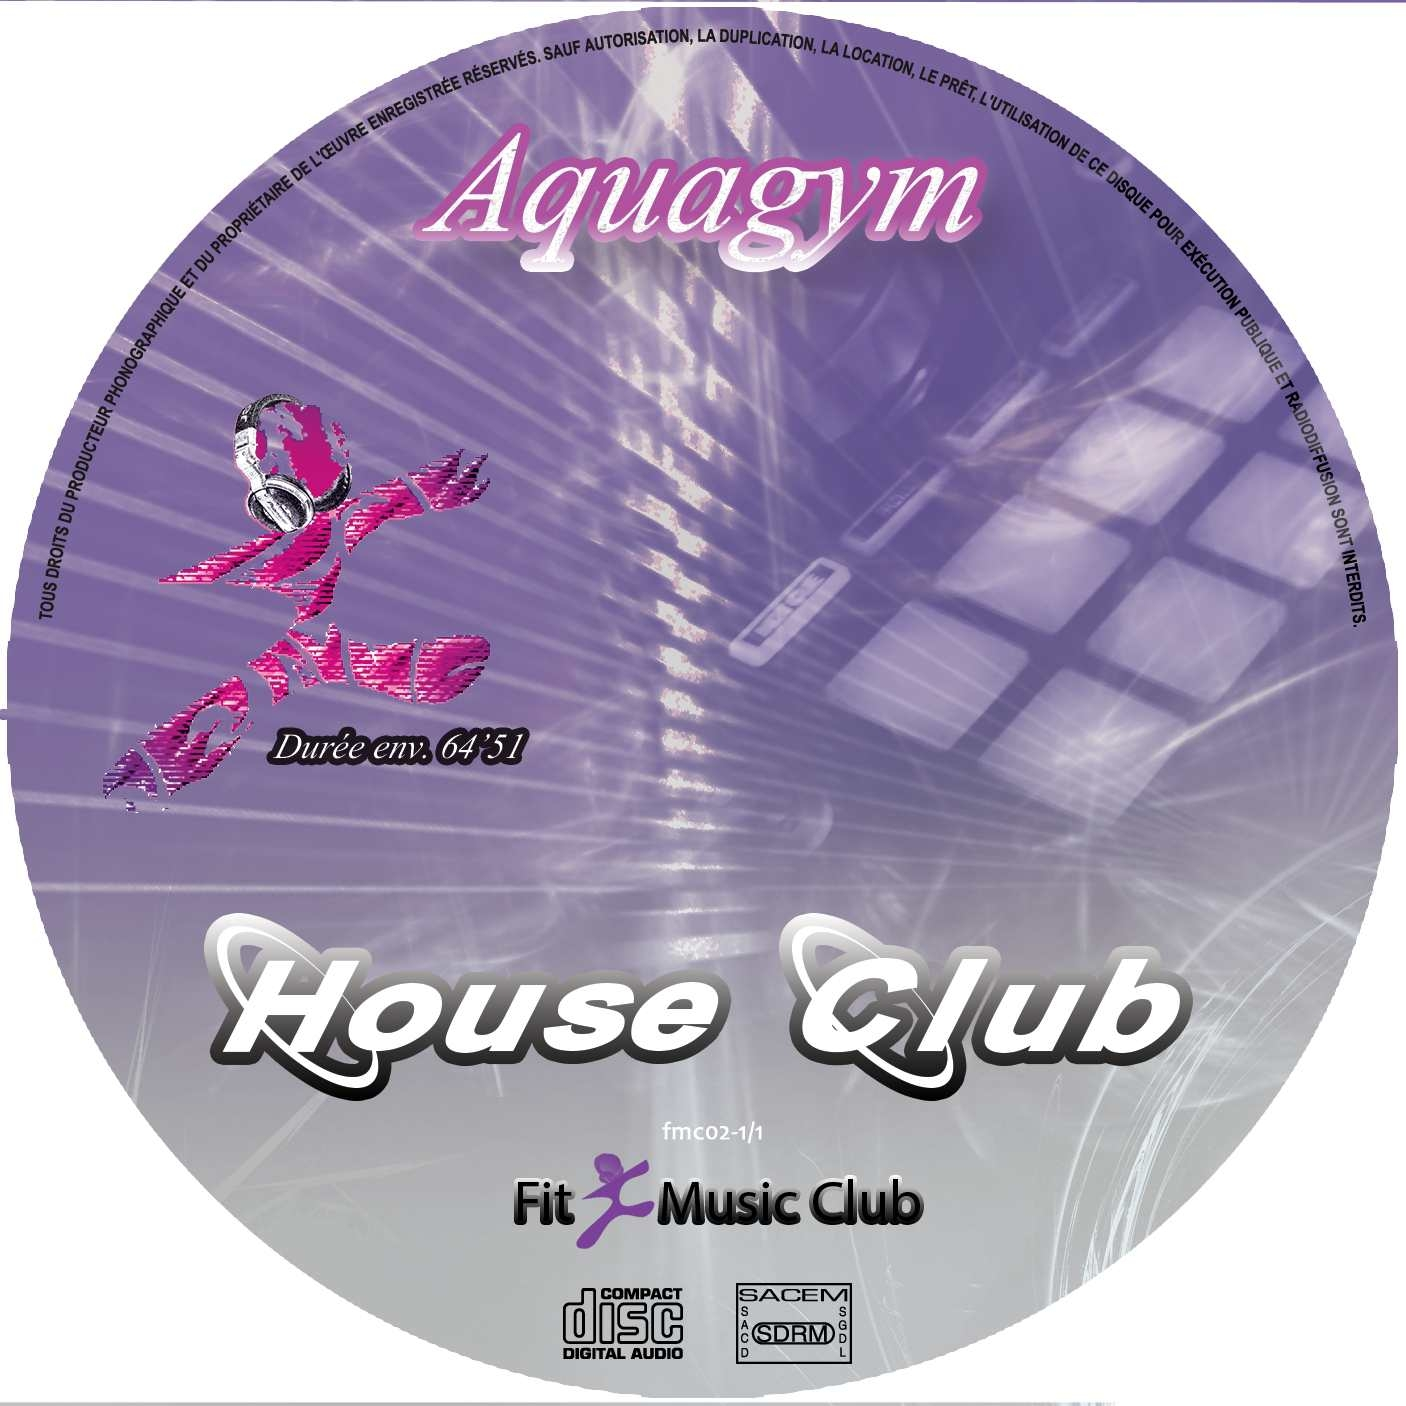 House Club / Aquagym